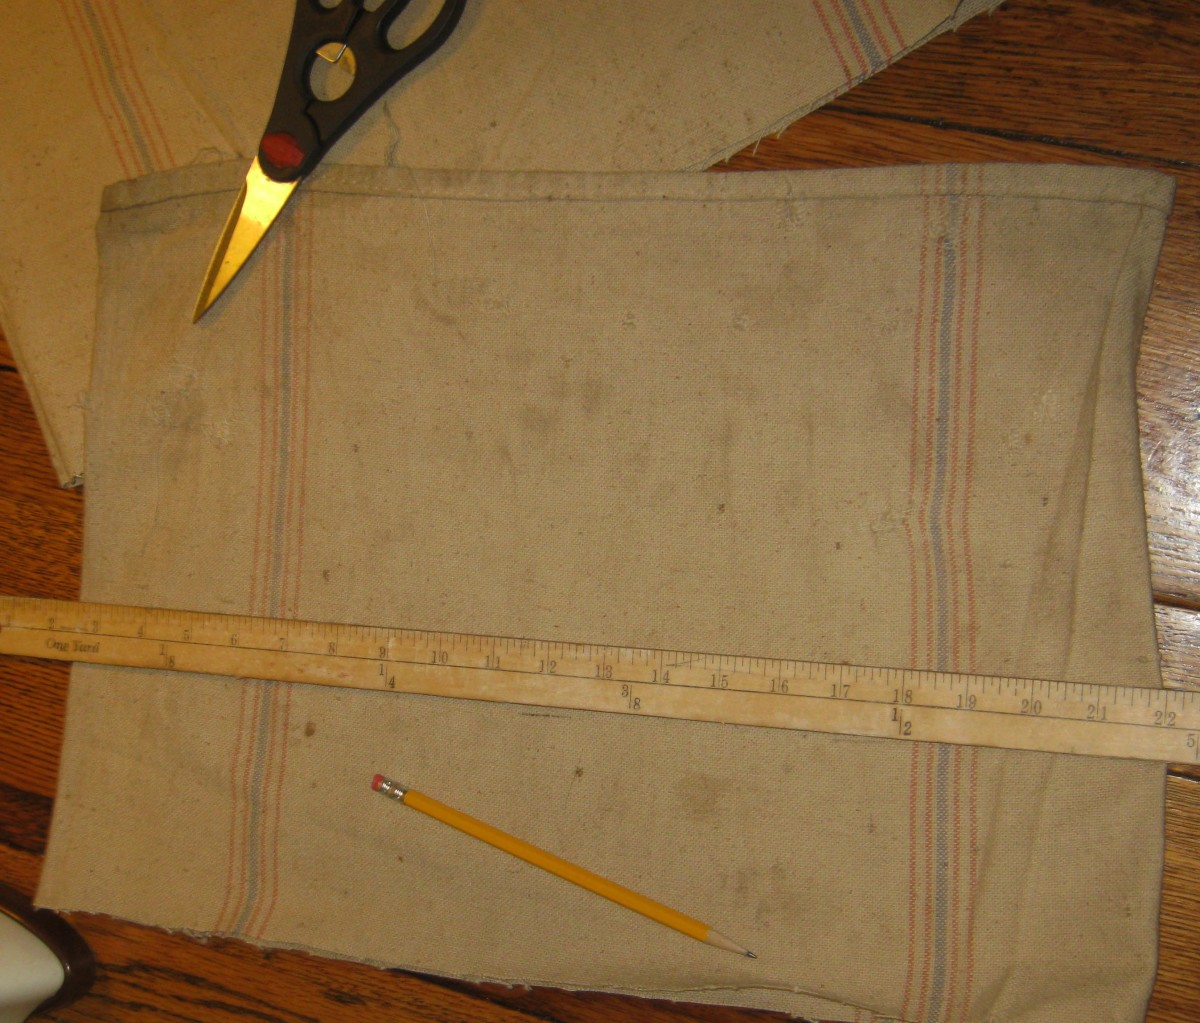 Measure before cutting